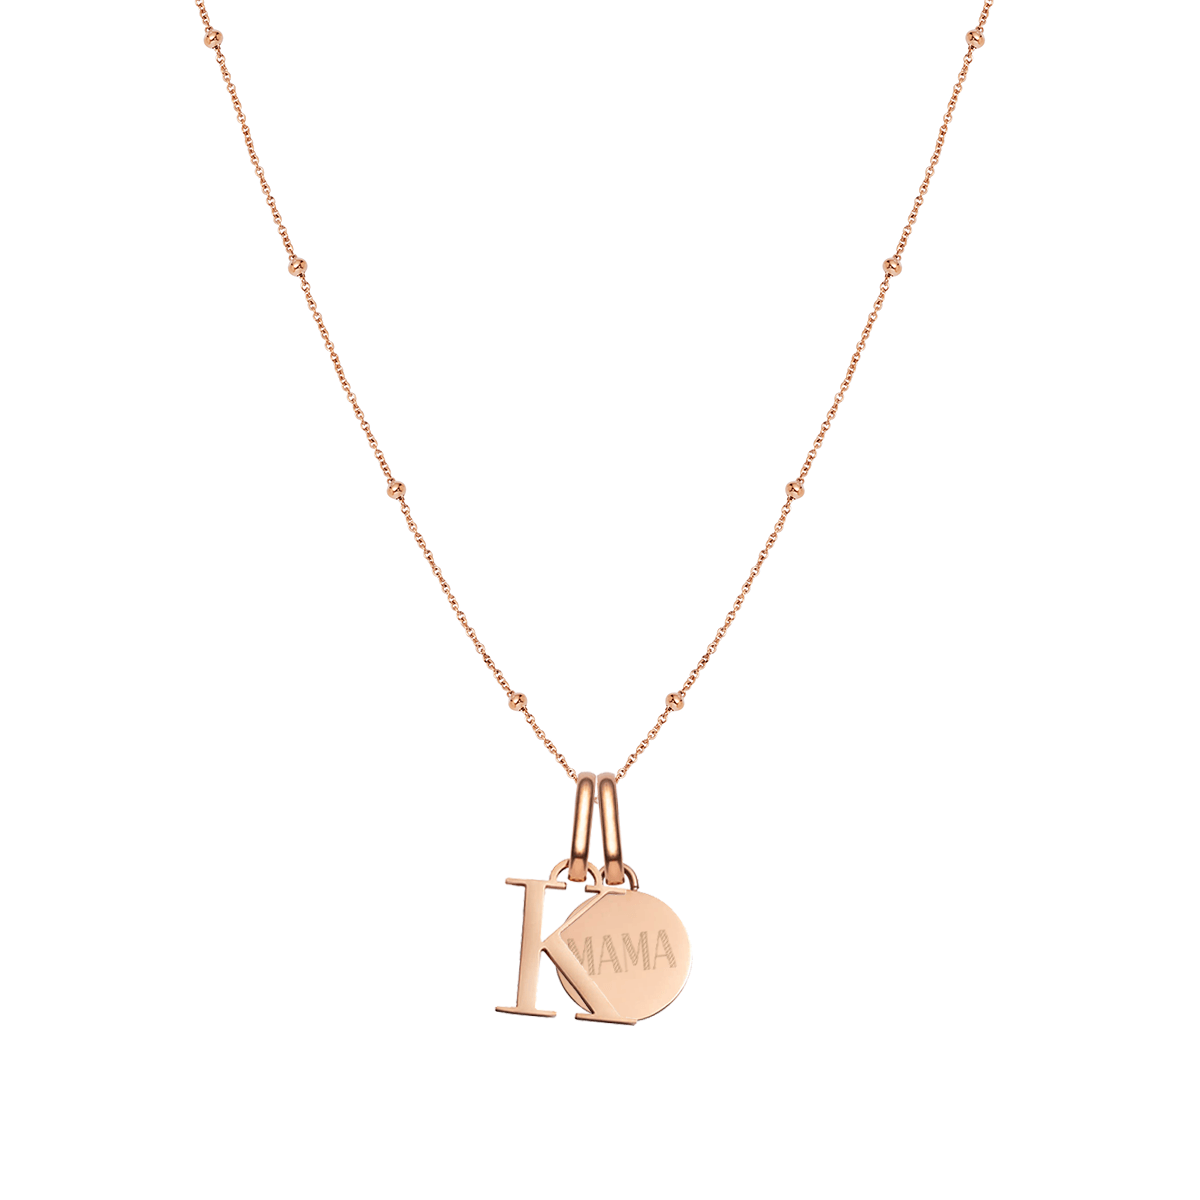 Letter & Circular Sphere Chain Necklace (Rose Gold)